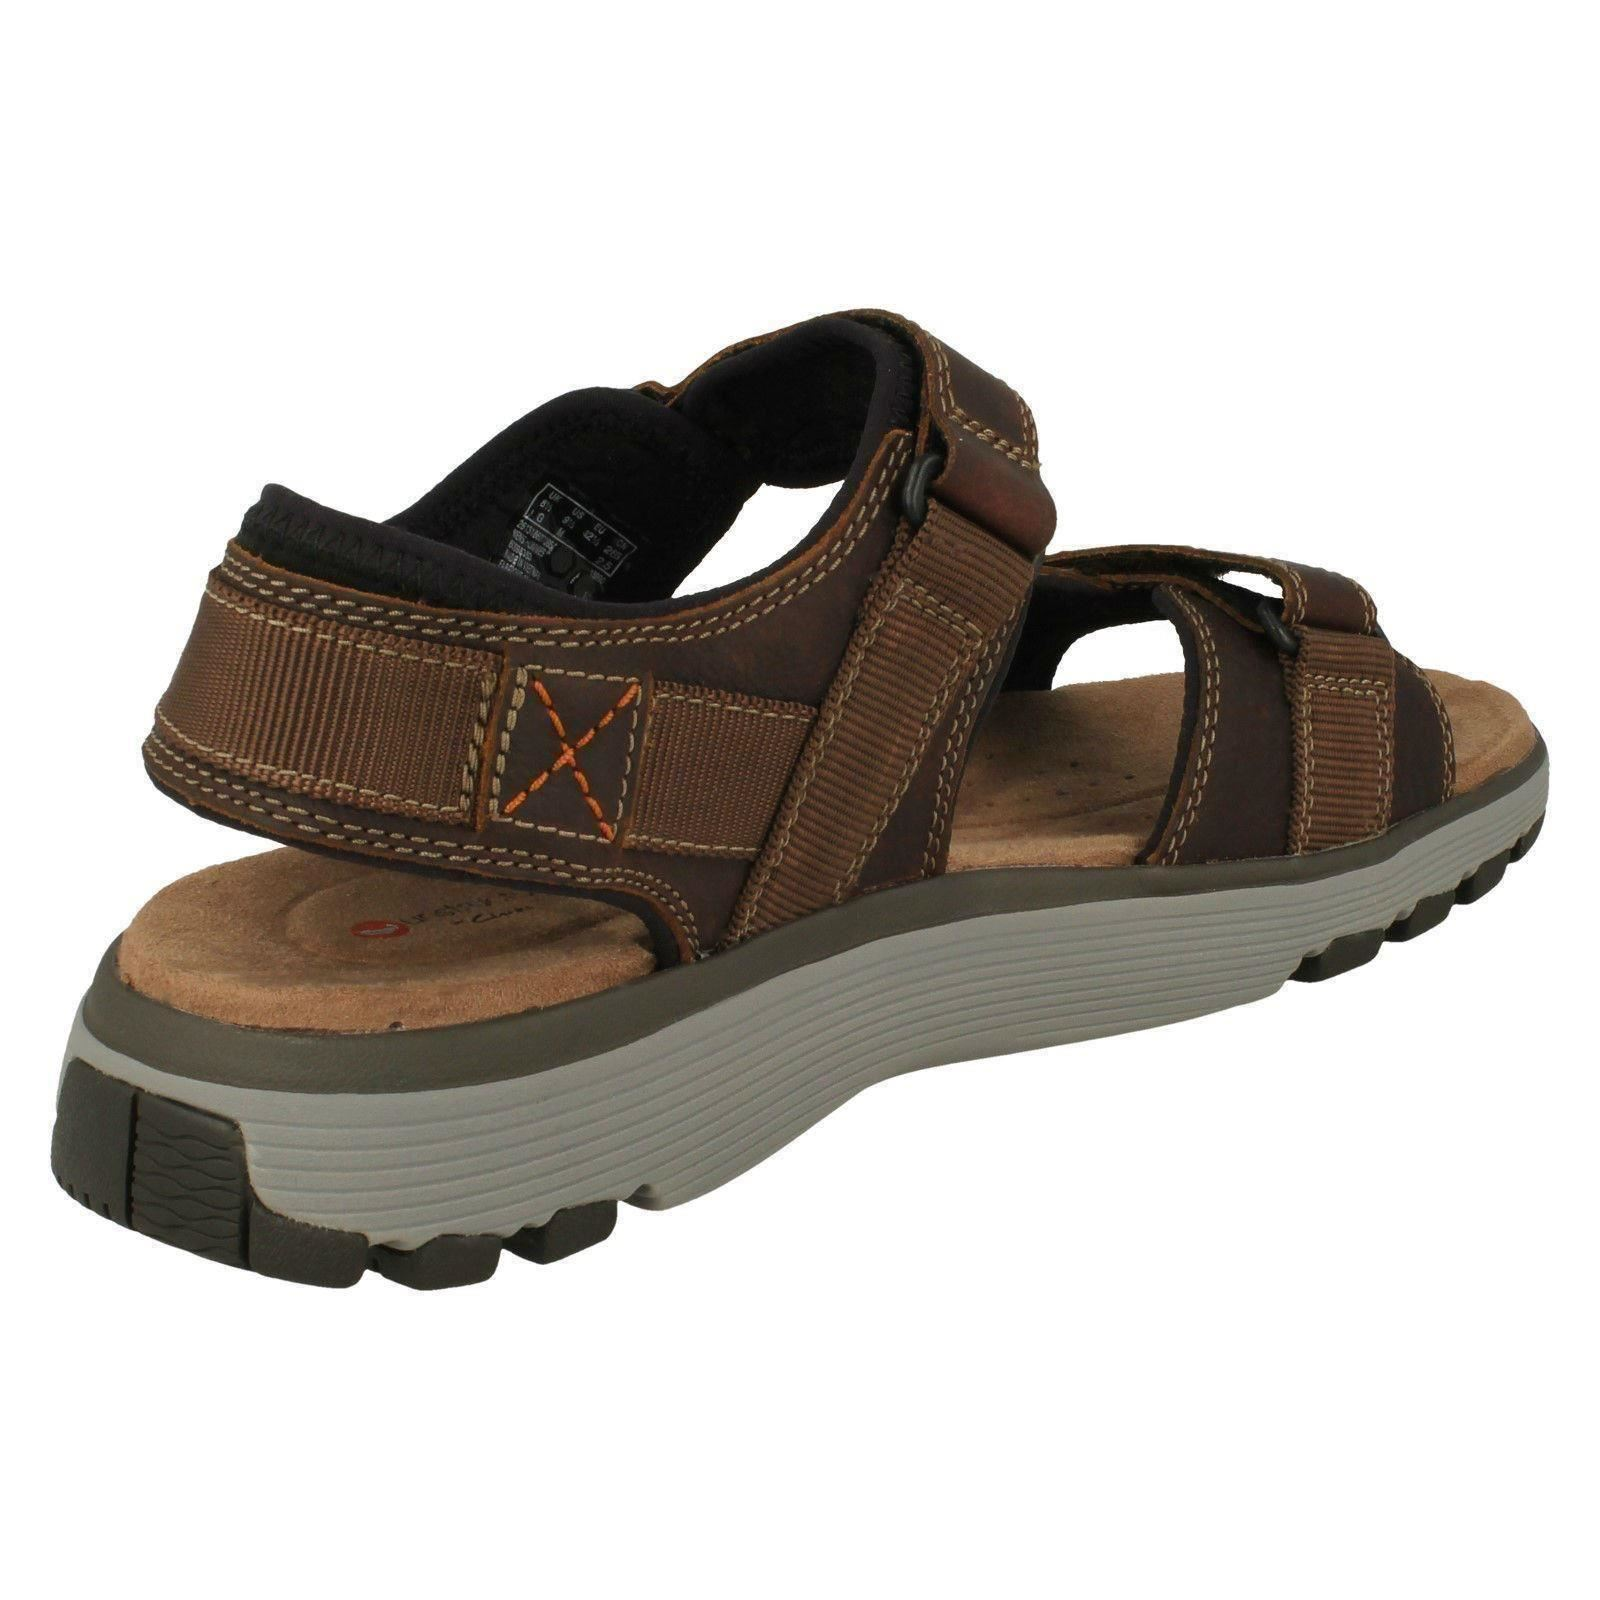 Mens Clarks Casual Strapped Trek Sandals *Un Trek Strapped Part* 94d2cc